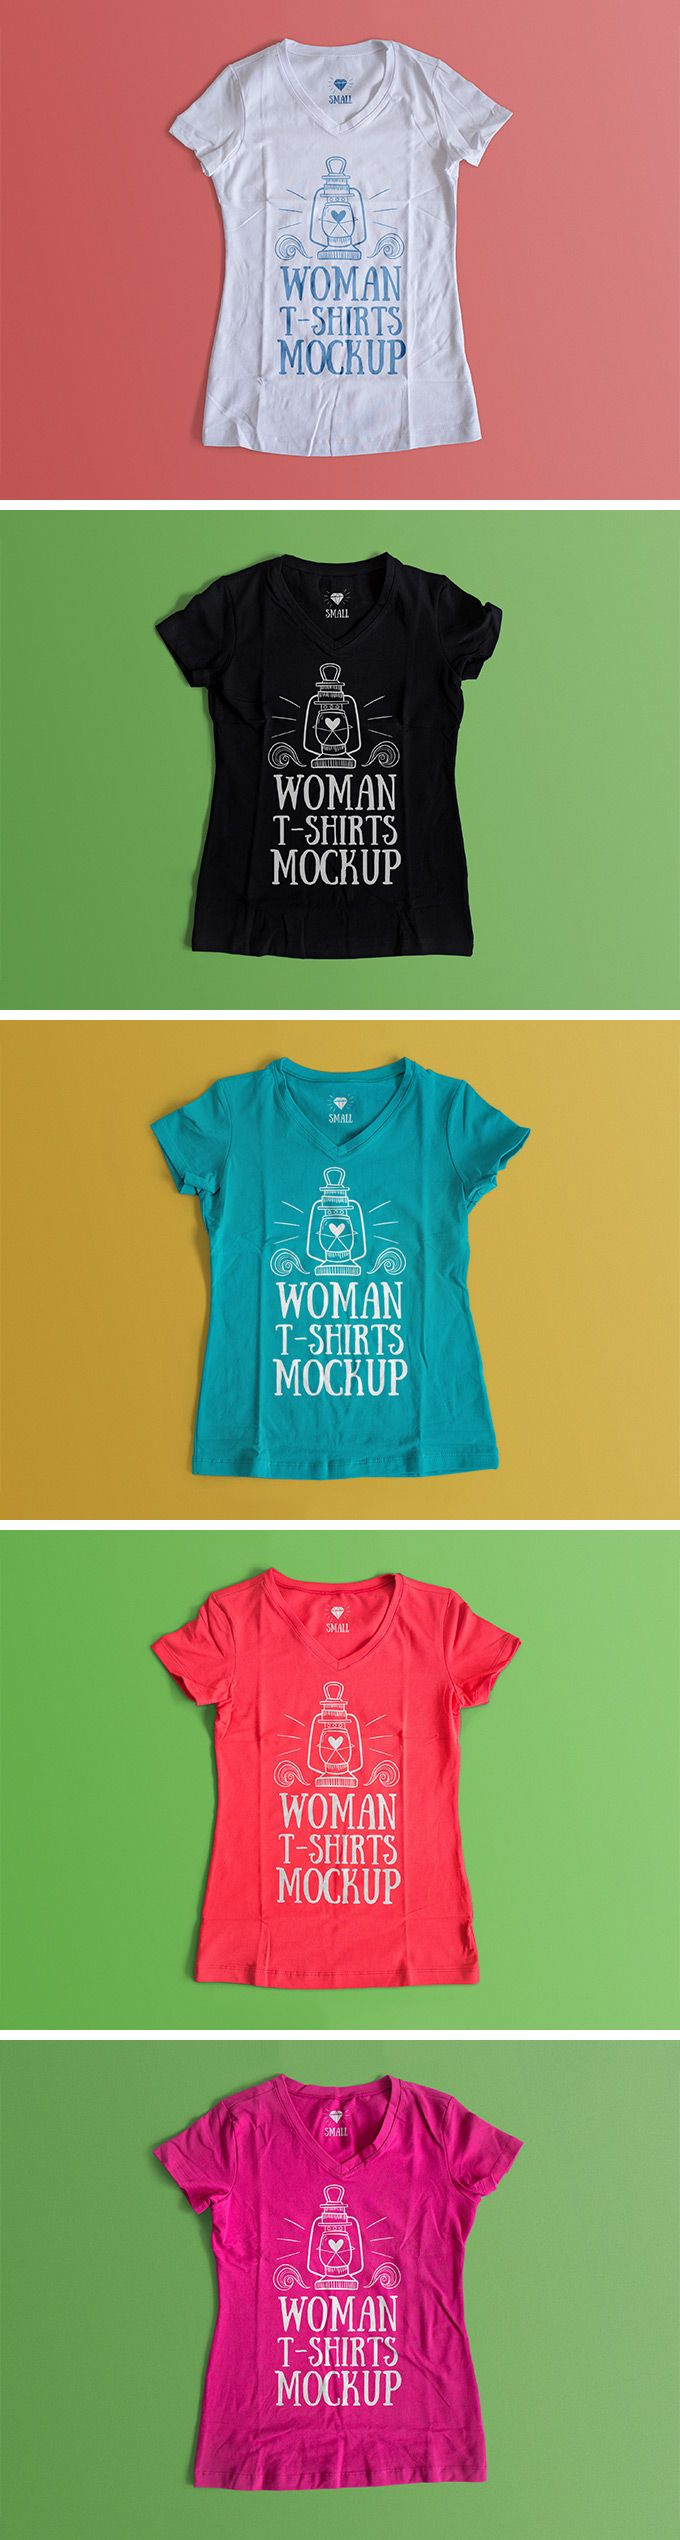 Shirt design generator free